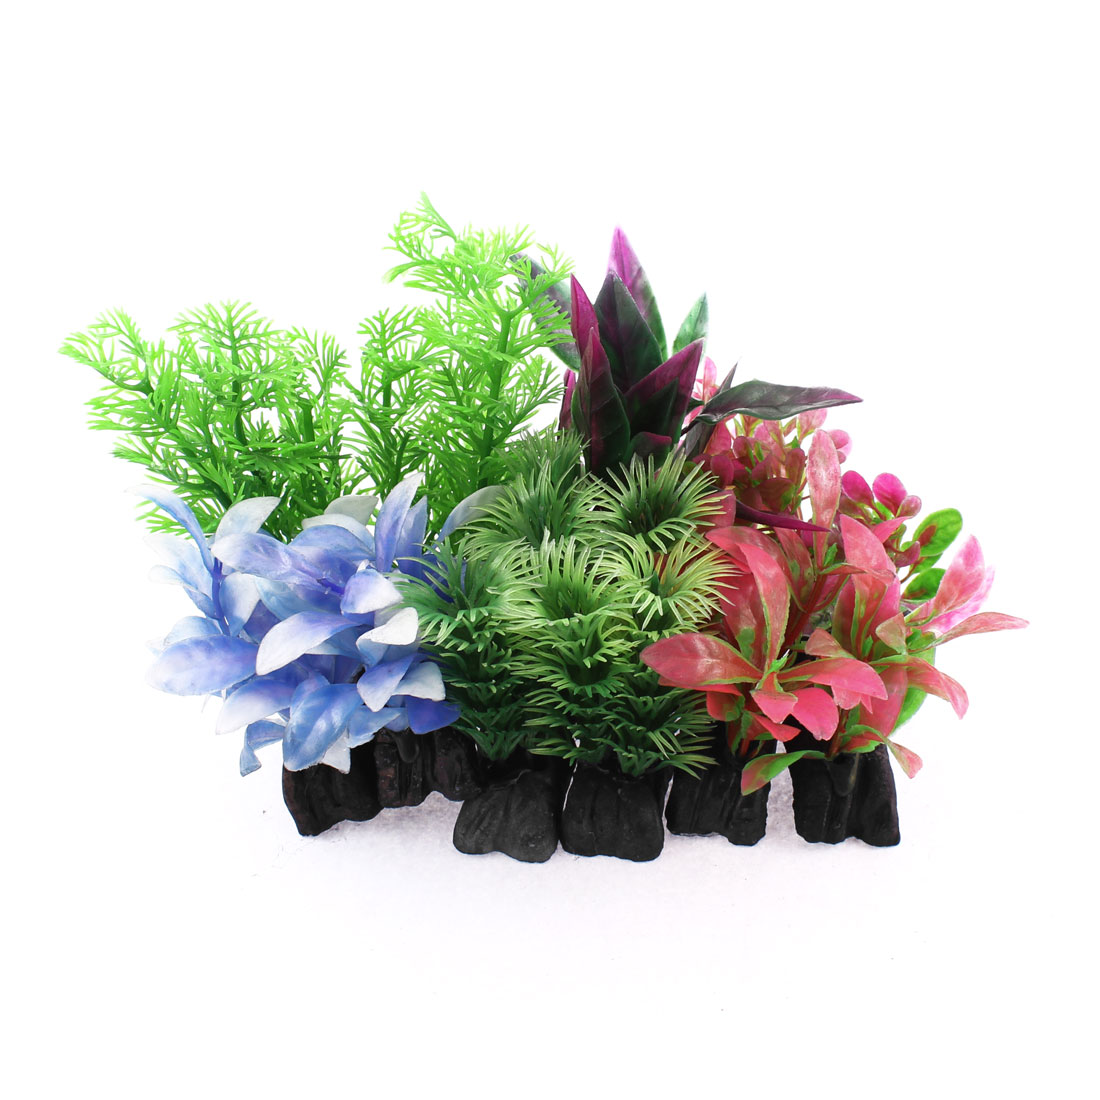 Aquarium Plastic Artificial Aquatic Plant Decor Assorted Colors 12 in 1